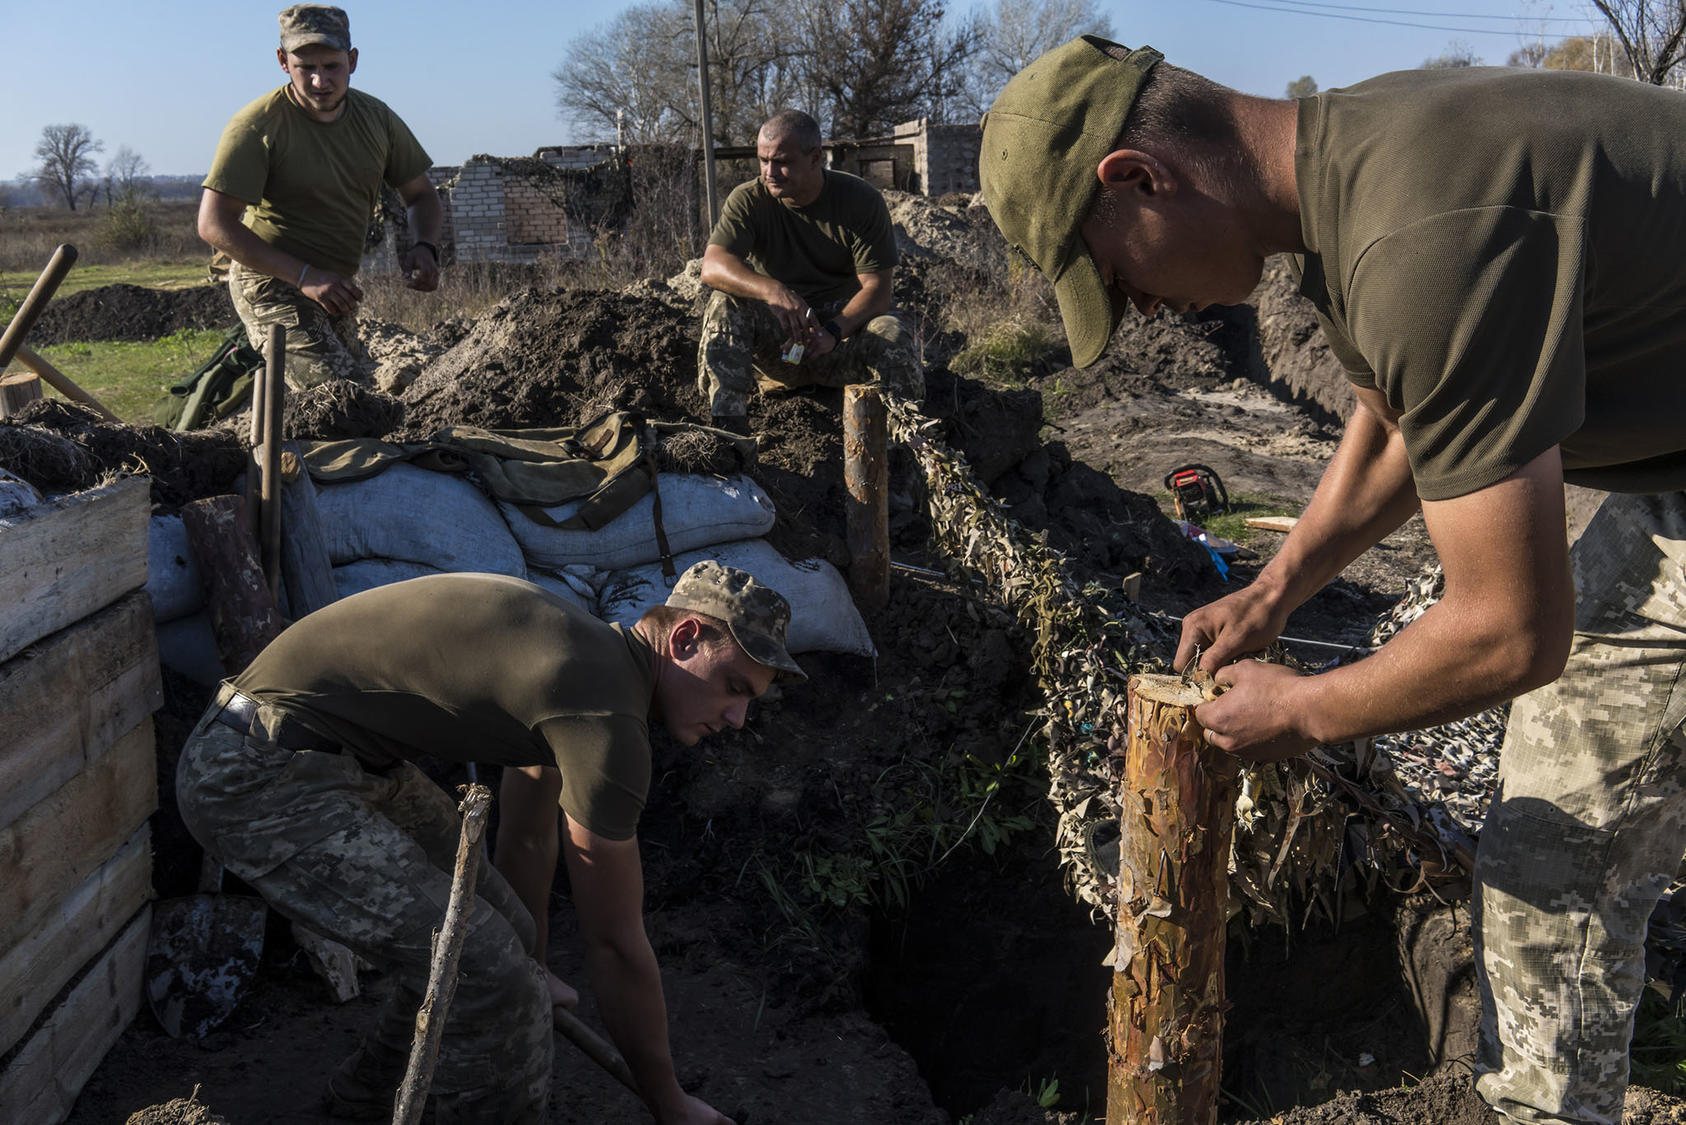 Ukrainian troops dig bunkers after withdrawing about 500 yards from the front line in the village of Stanytsia Luhanska. The pullback by both sides helped prepare for December 9 peace talks in the Russia-Ukraine war. (Brendan Hoffman/The New York Times)